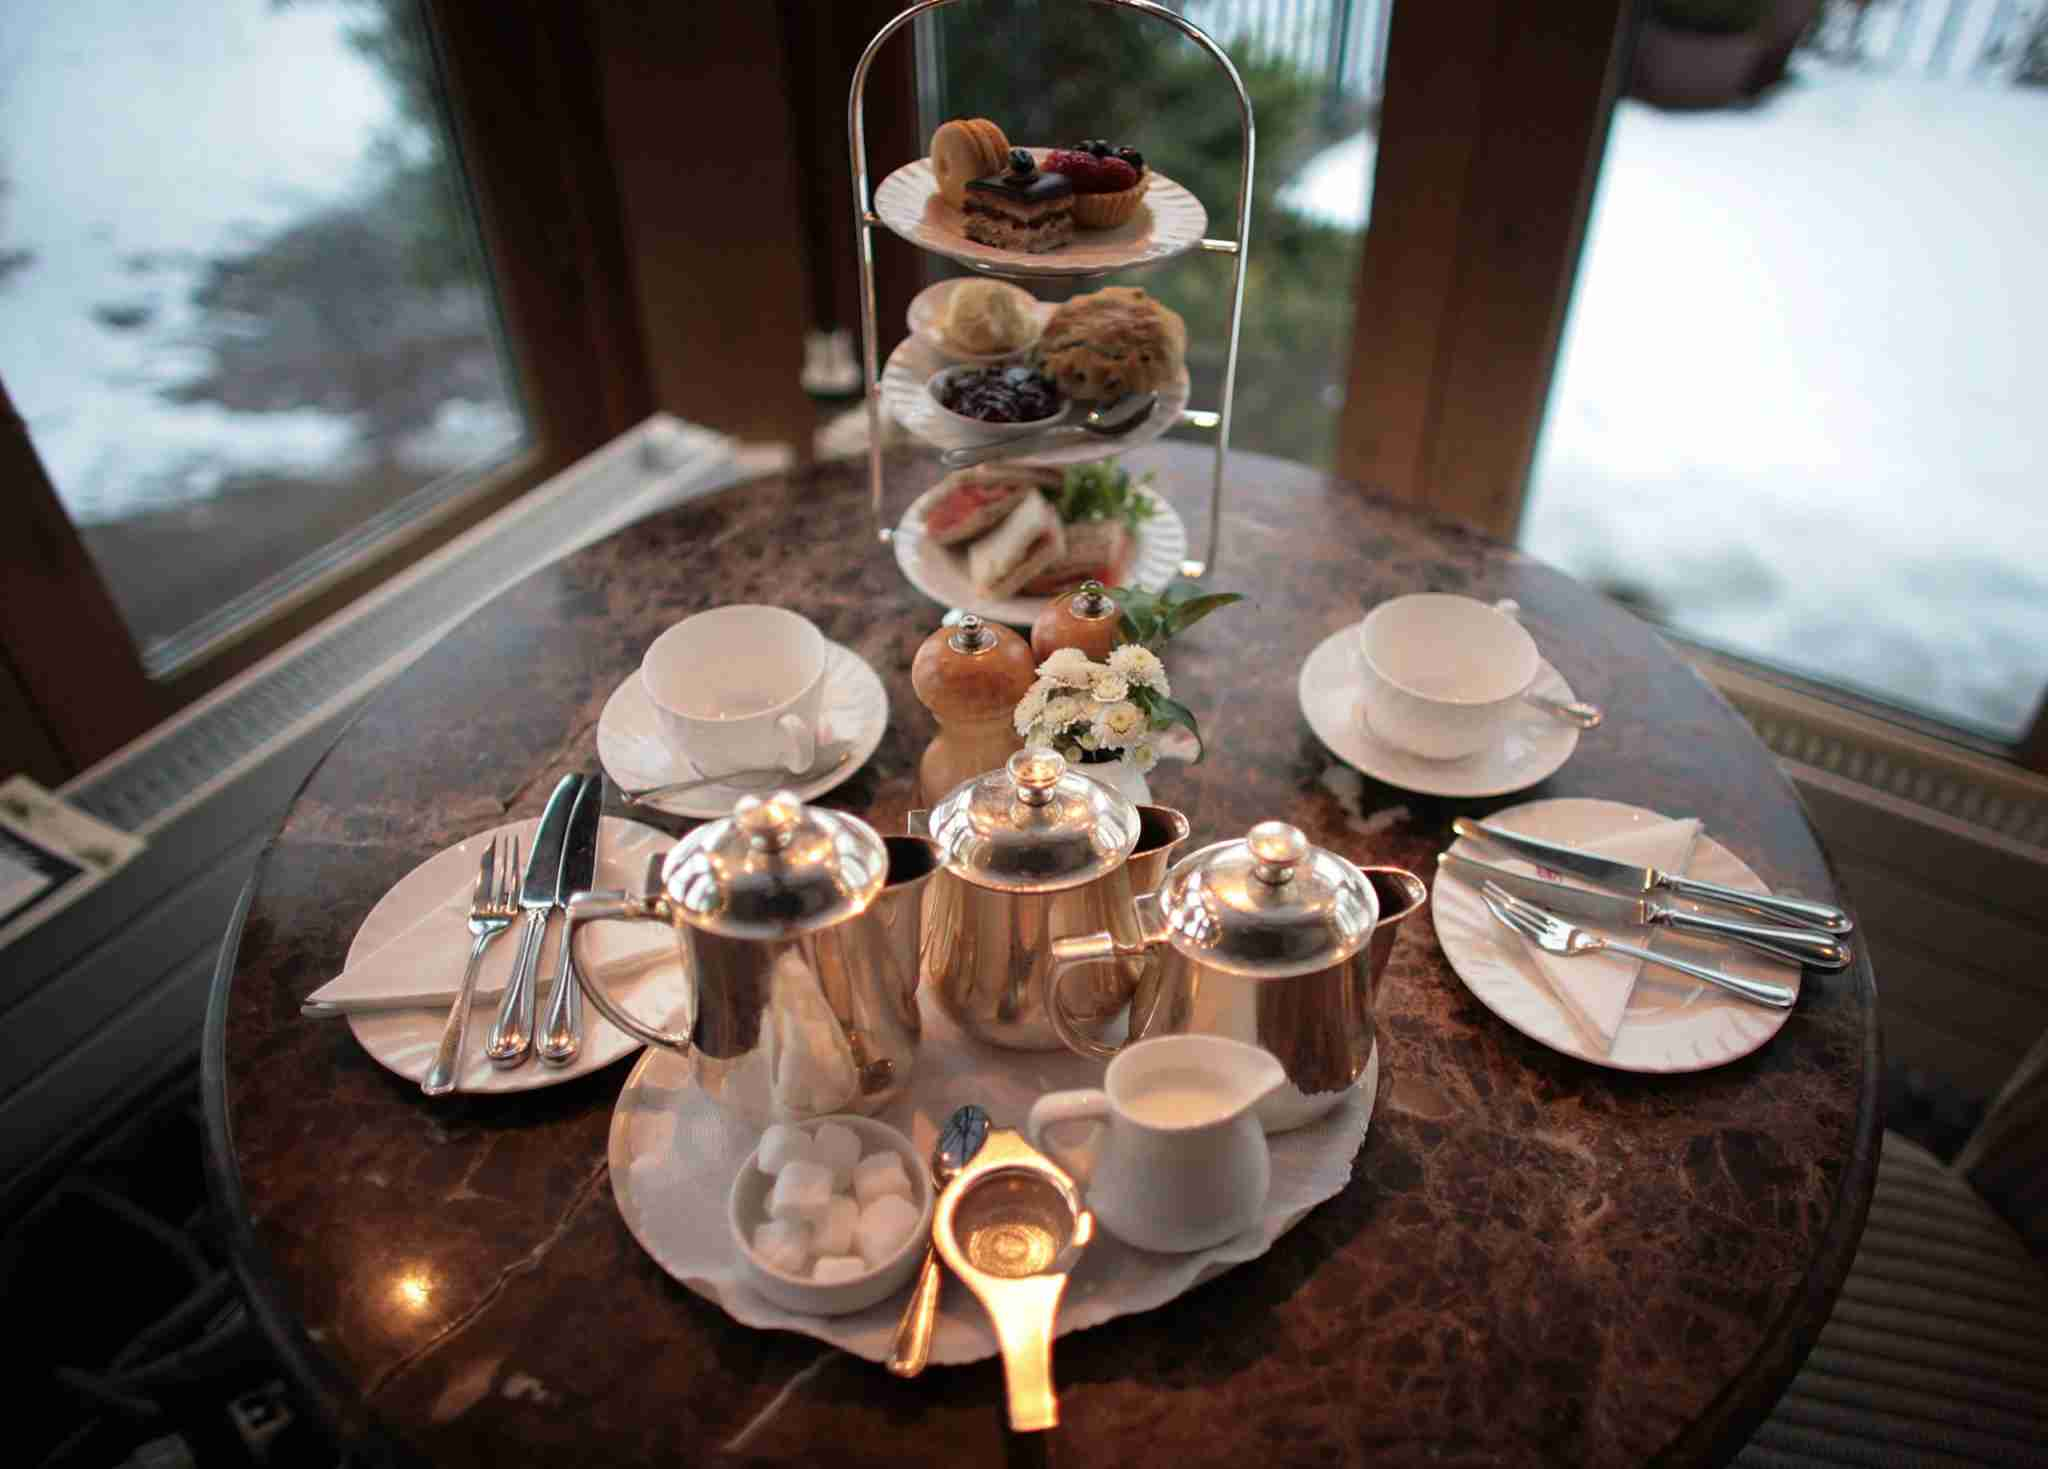 HARROGATE, ENGLAND - FEBRUARY 12: Afternoon tea for two at Bettys Tea Room, Harlow Carr on February 12, 2009 in Harrogate, England. The family owned company Taylors of Harrogate have been producing it